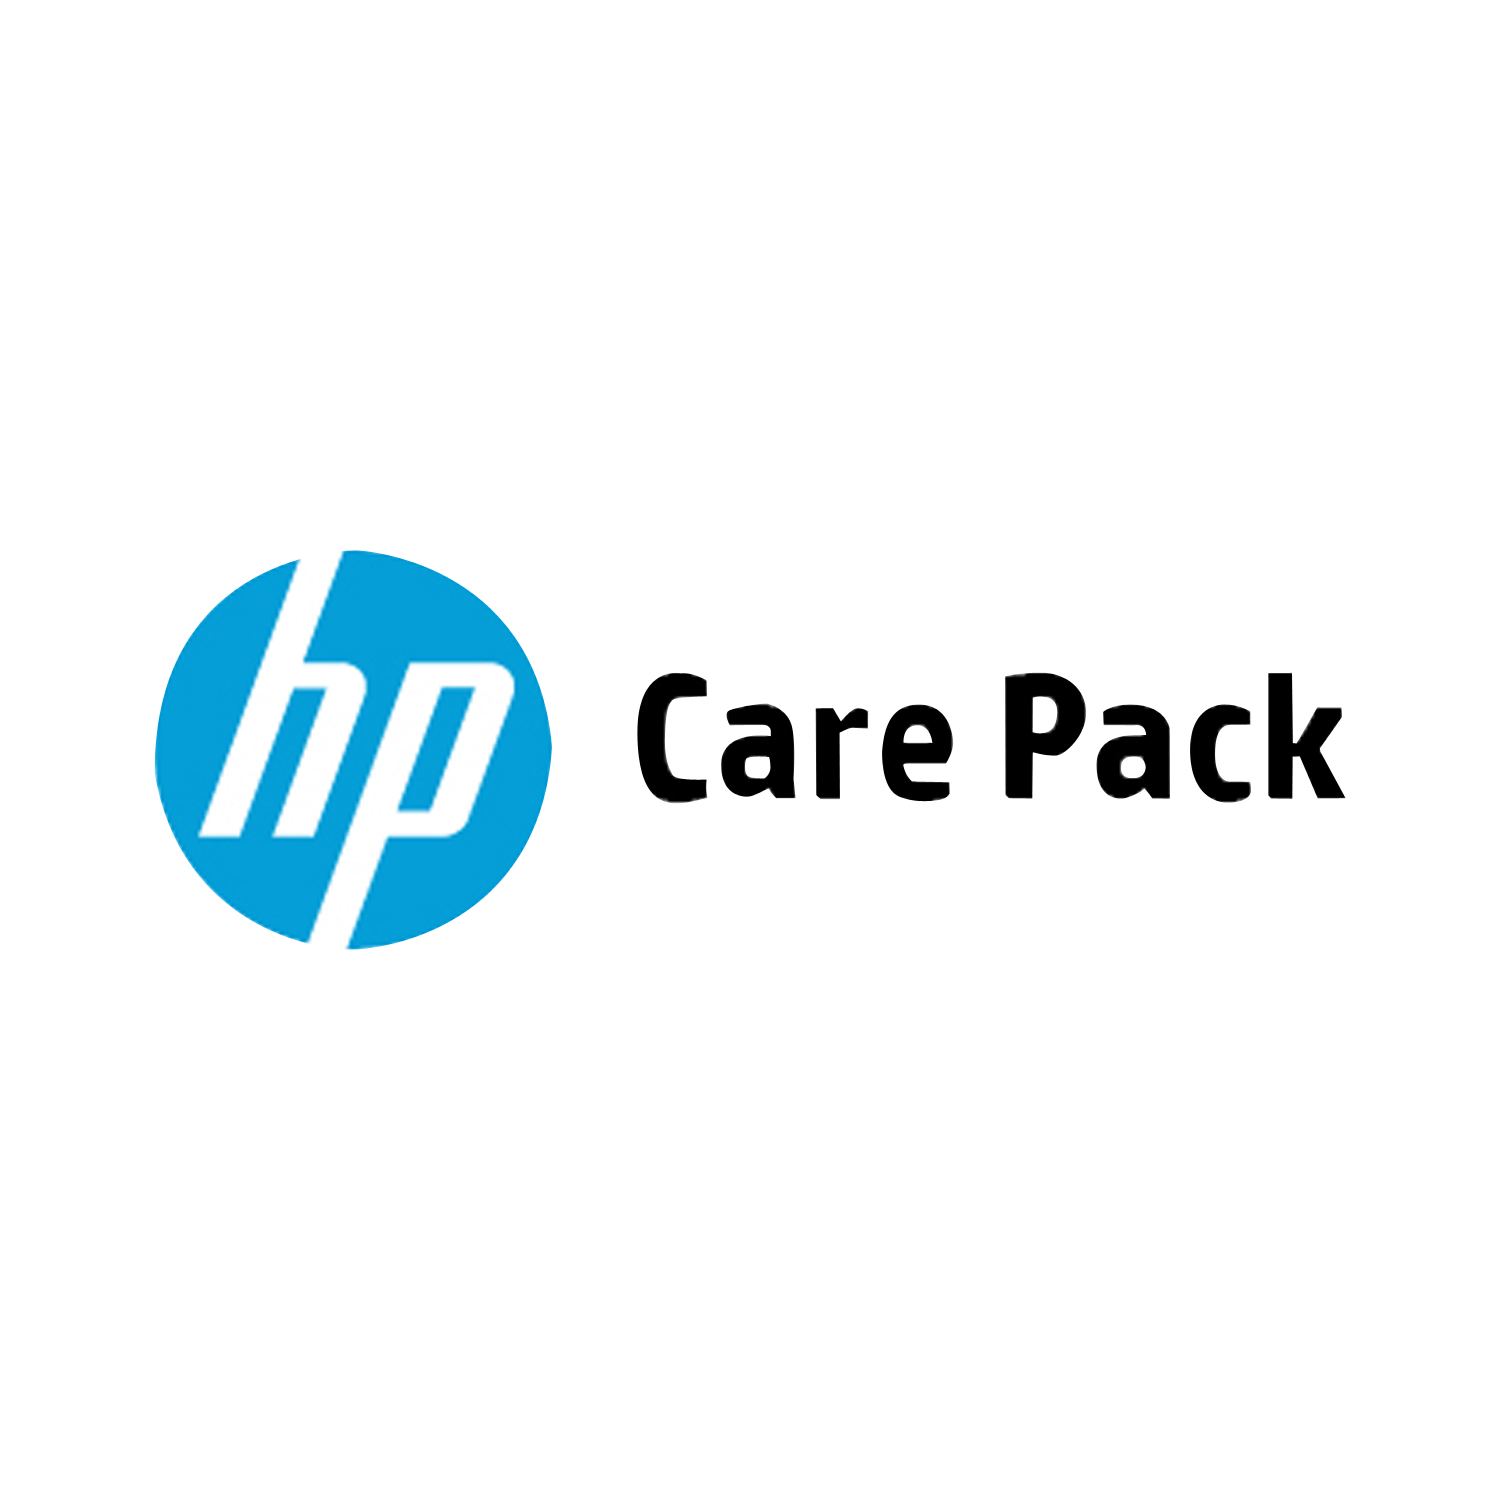 Electronic HP Care Pack Next Business Day Hardware Support - Extended Service Agreement - Parts And Labour - 3 Years - On-site - 9x5 - Response Time: NBD - For Color LaserJet Pro M452dn, M452 - C2000